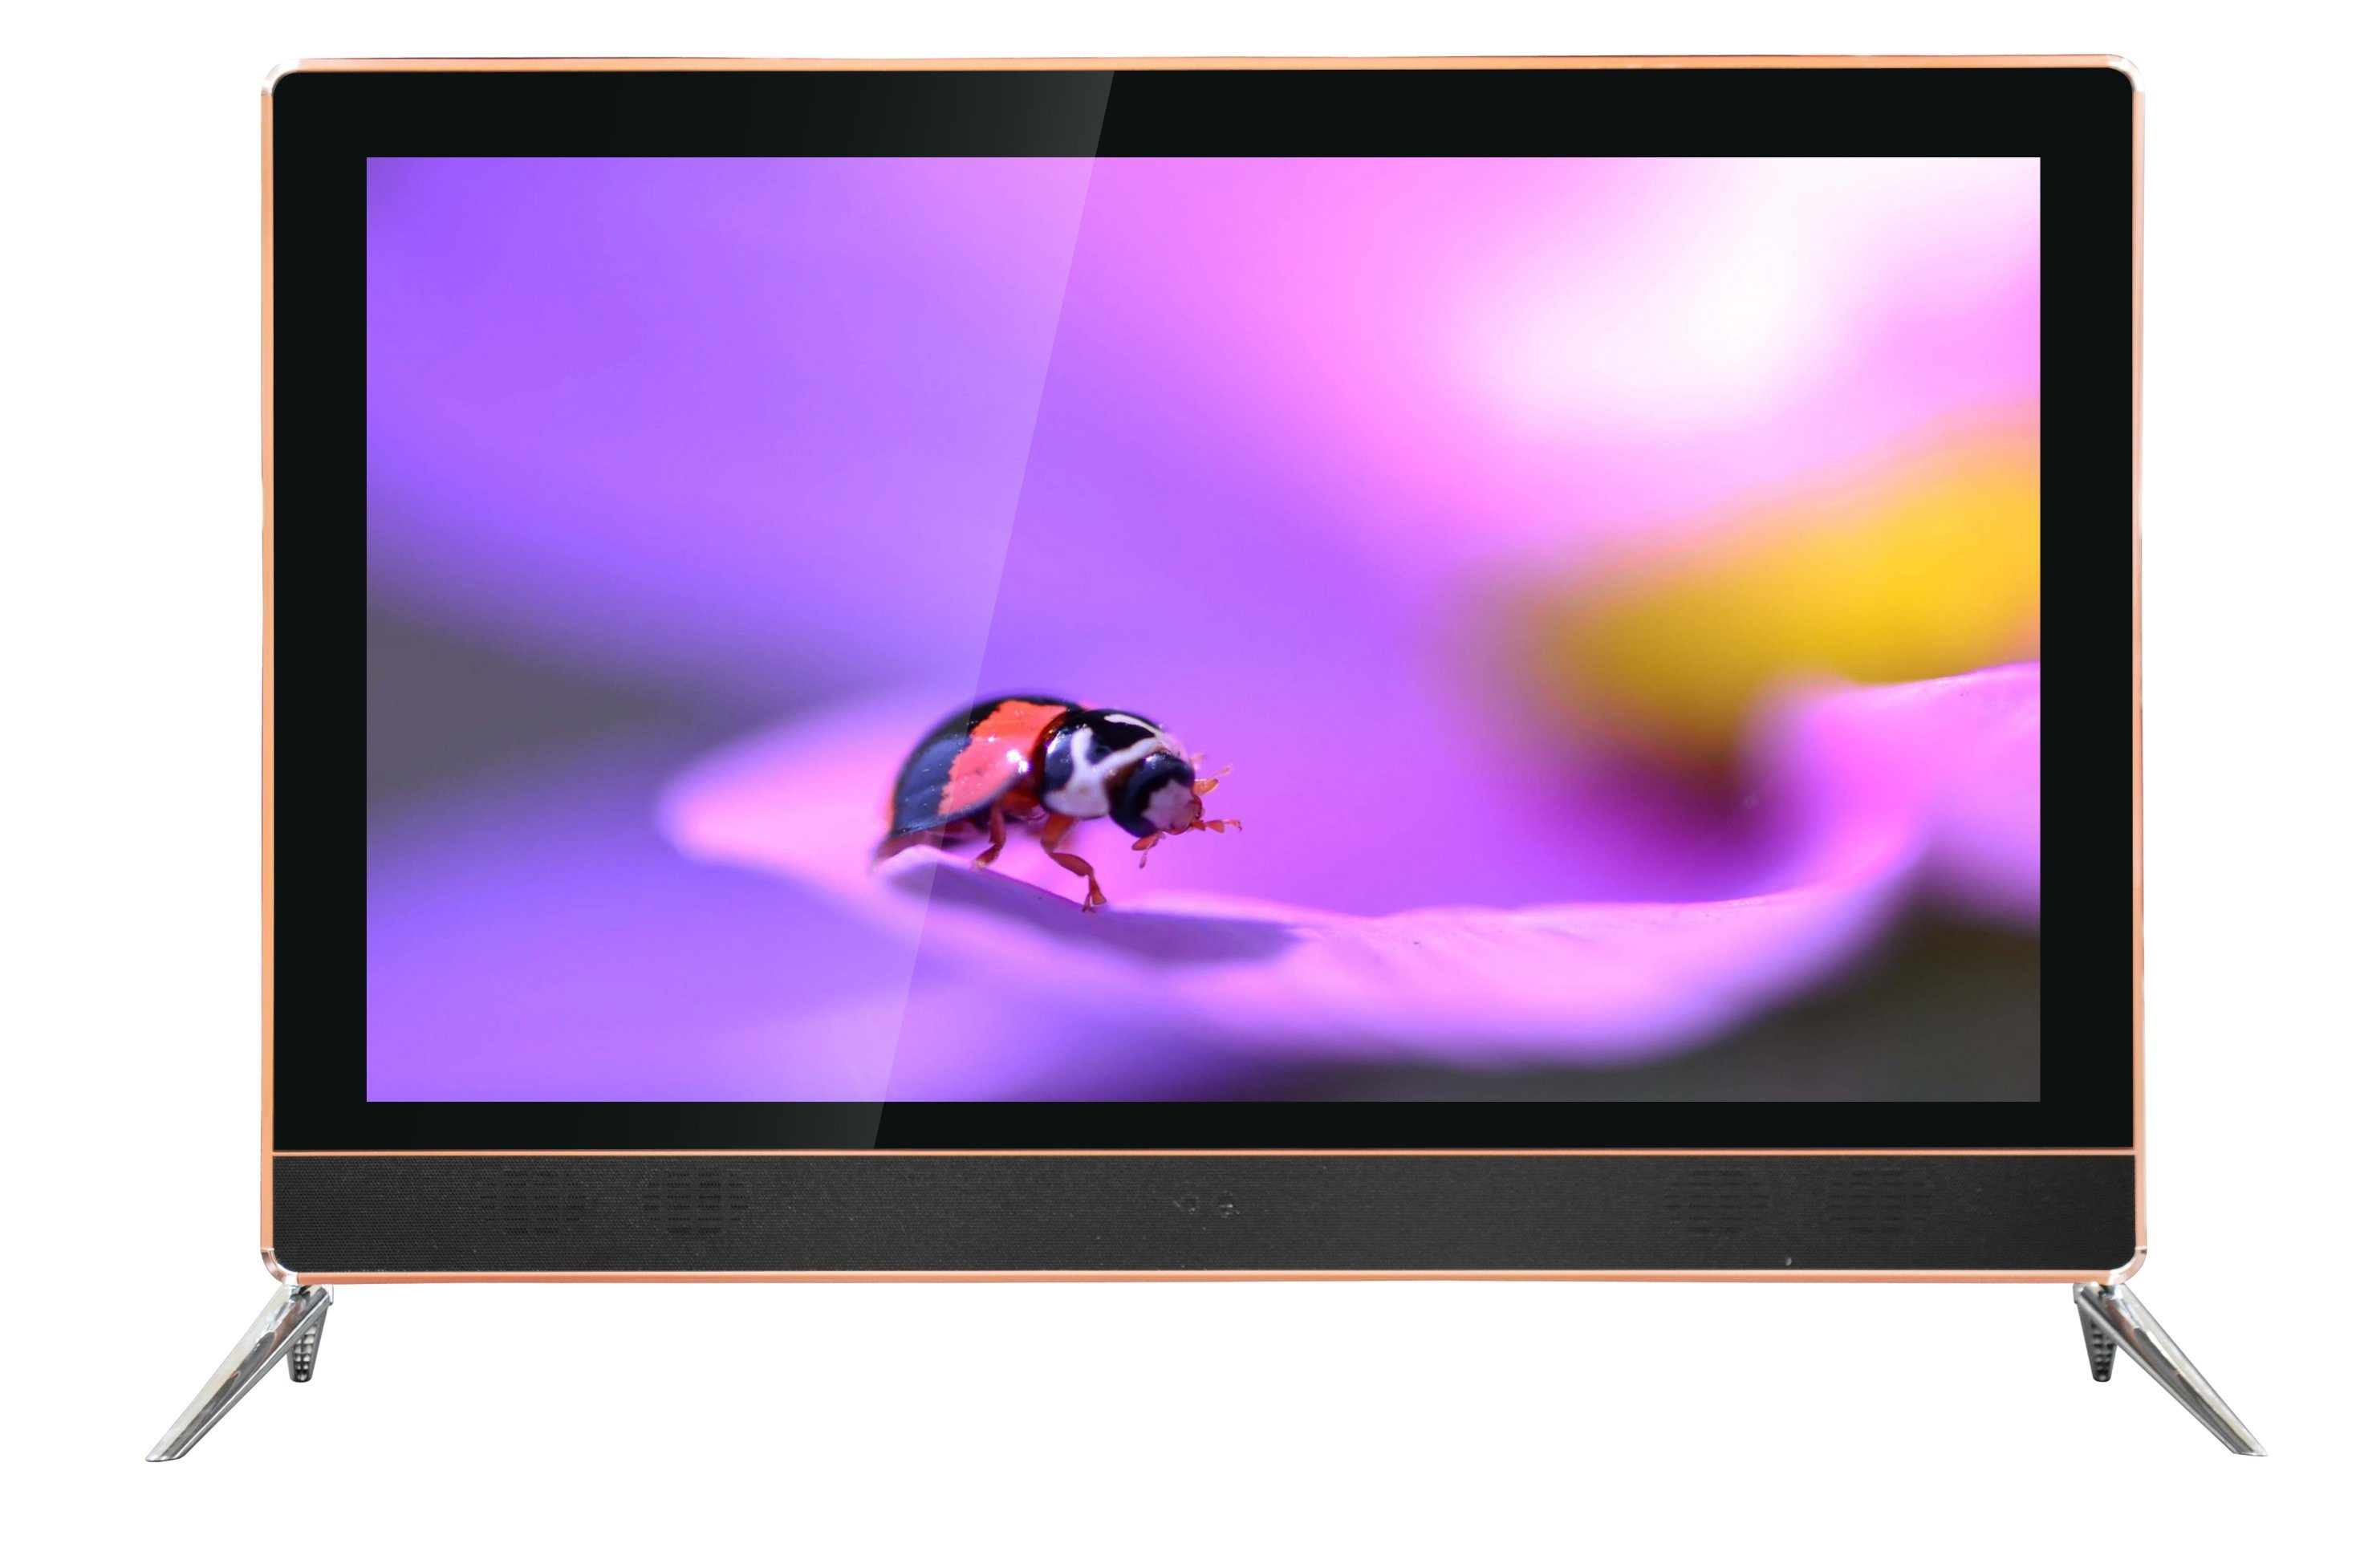 27 Inches Color HD LED LCD TV High Quality